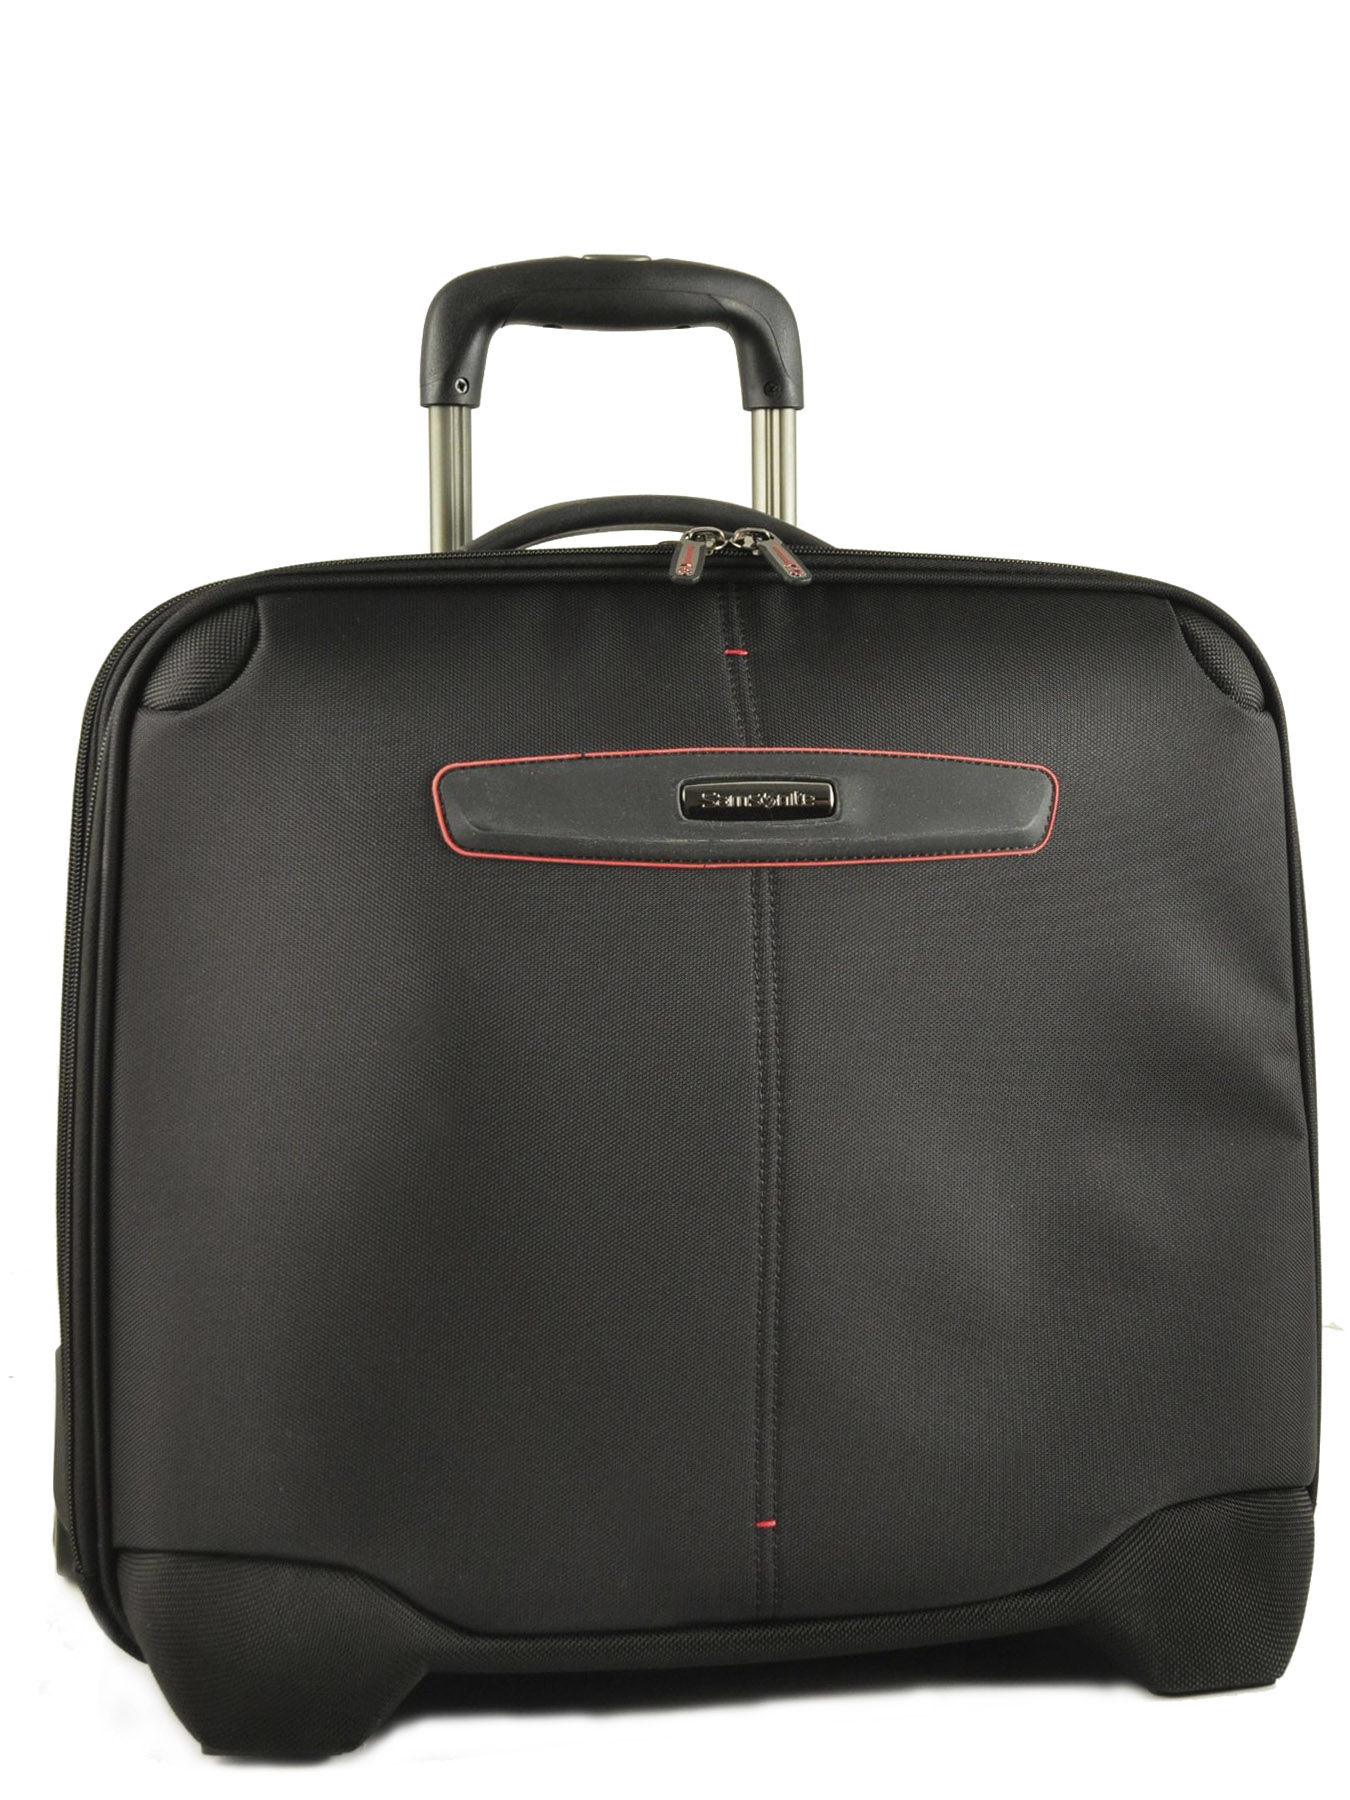 pilot case roulettes samsonite laptop pillow 3 u43007. Black Bedroom Furniture Sets. Home Design Ideas